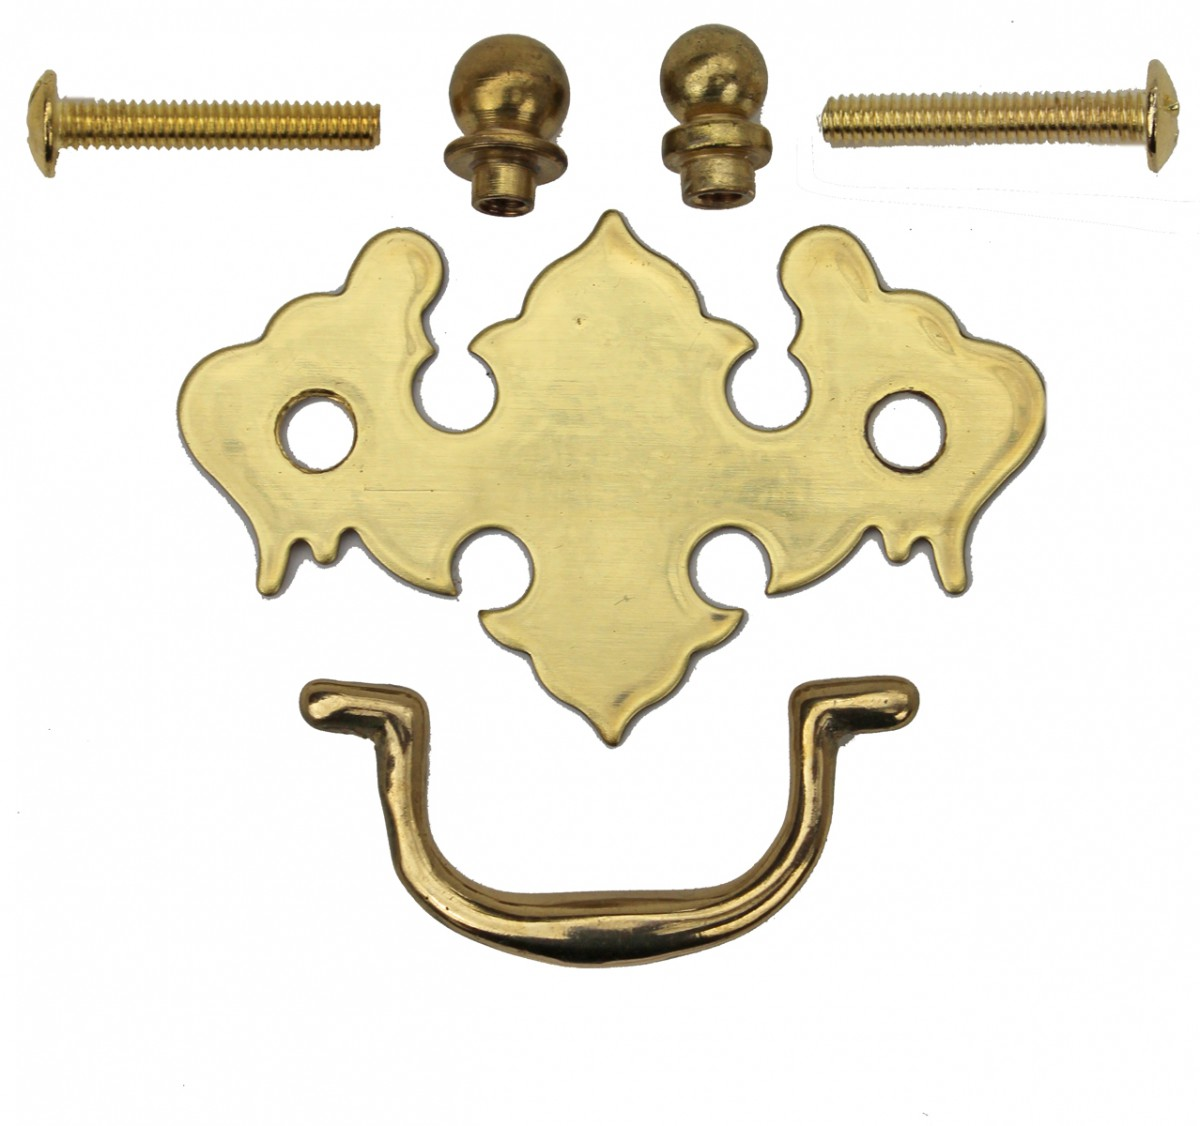 Chippendale Bail Pull Bright Solid Brass 2 78 Furniture Hardware Cabinet Pull Cabinet Hardware